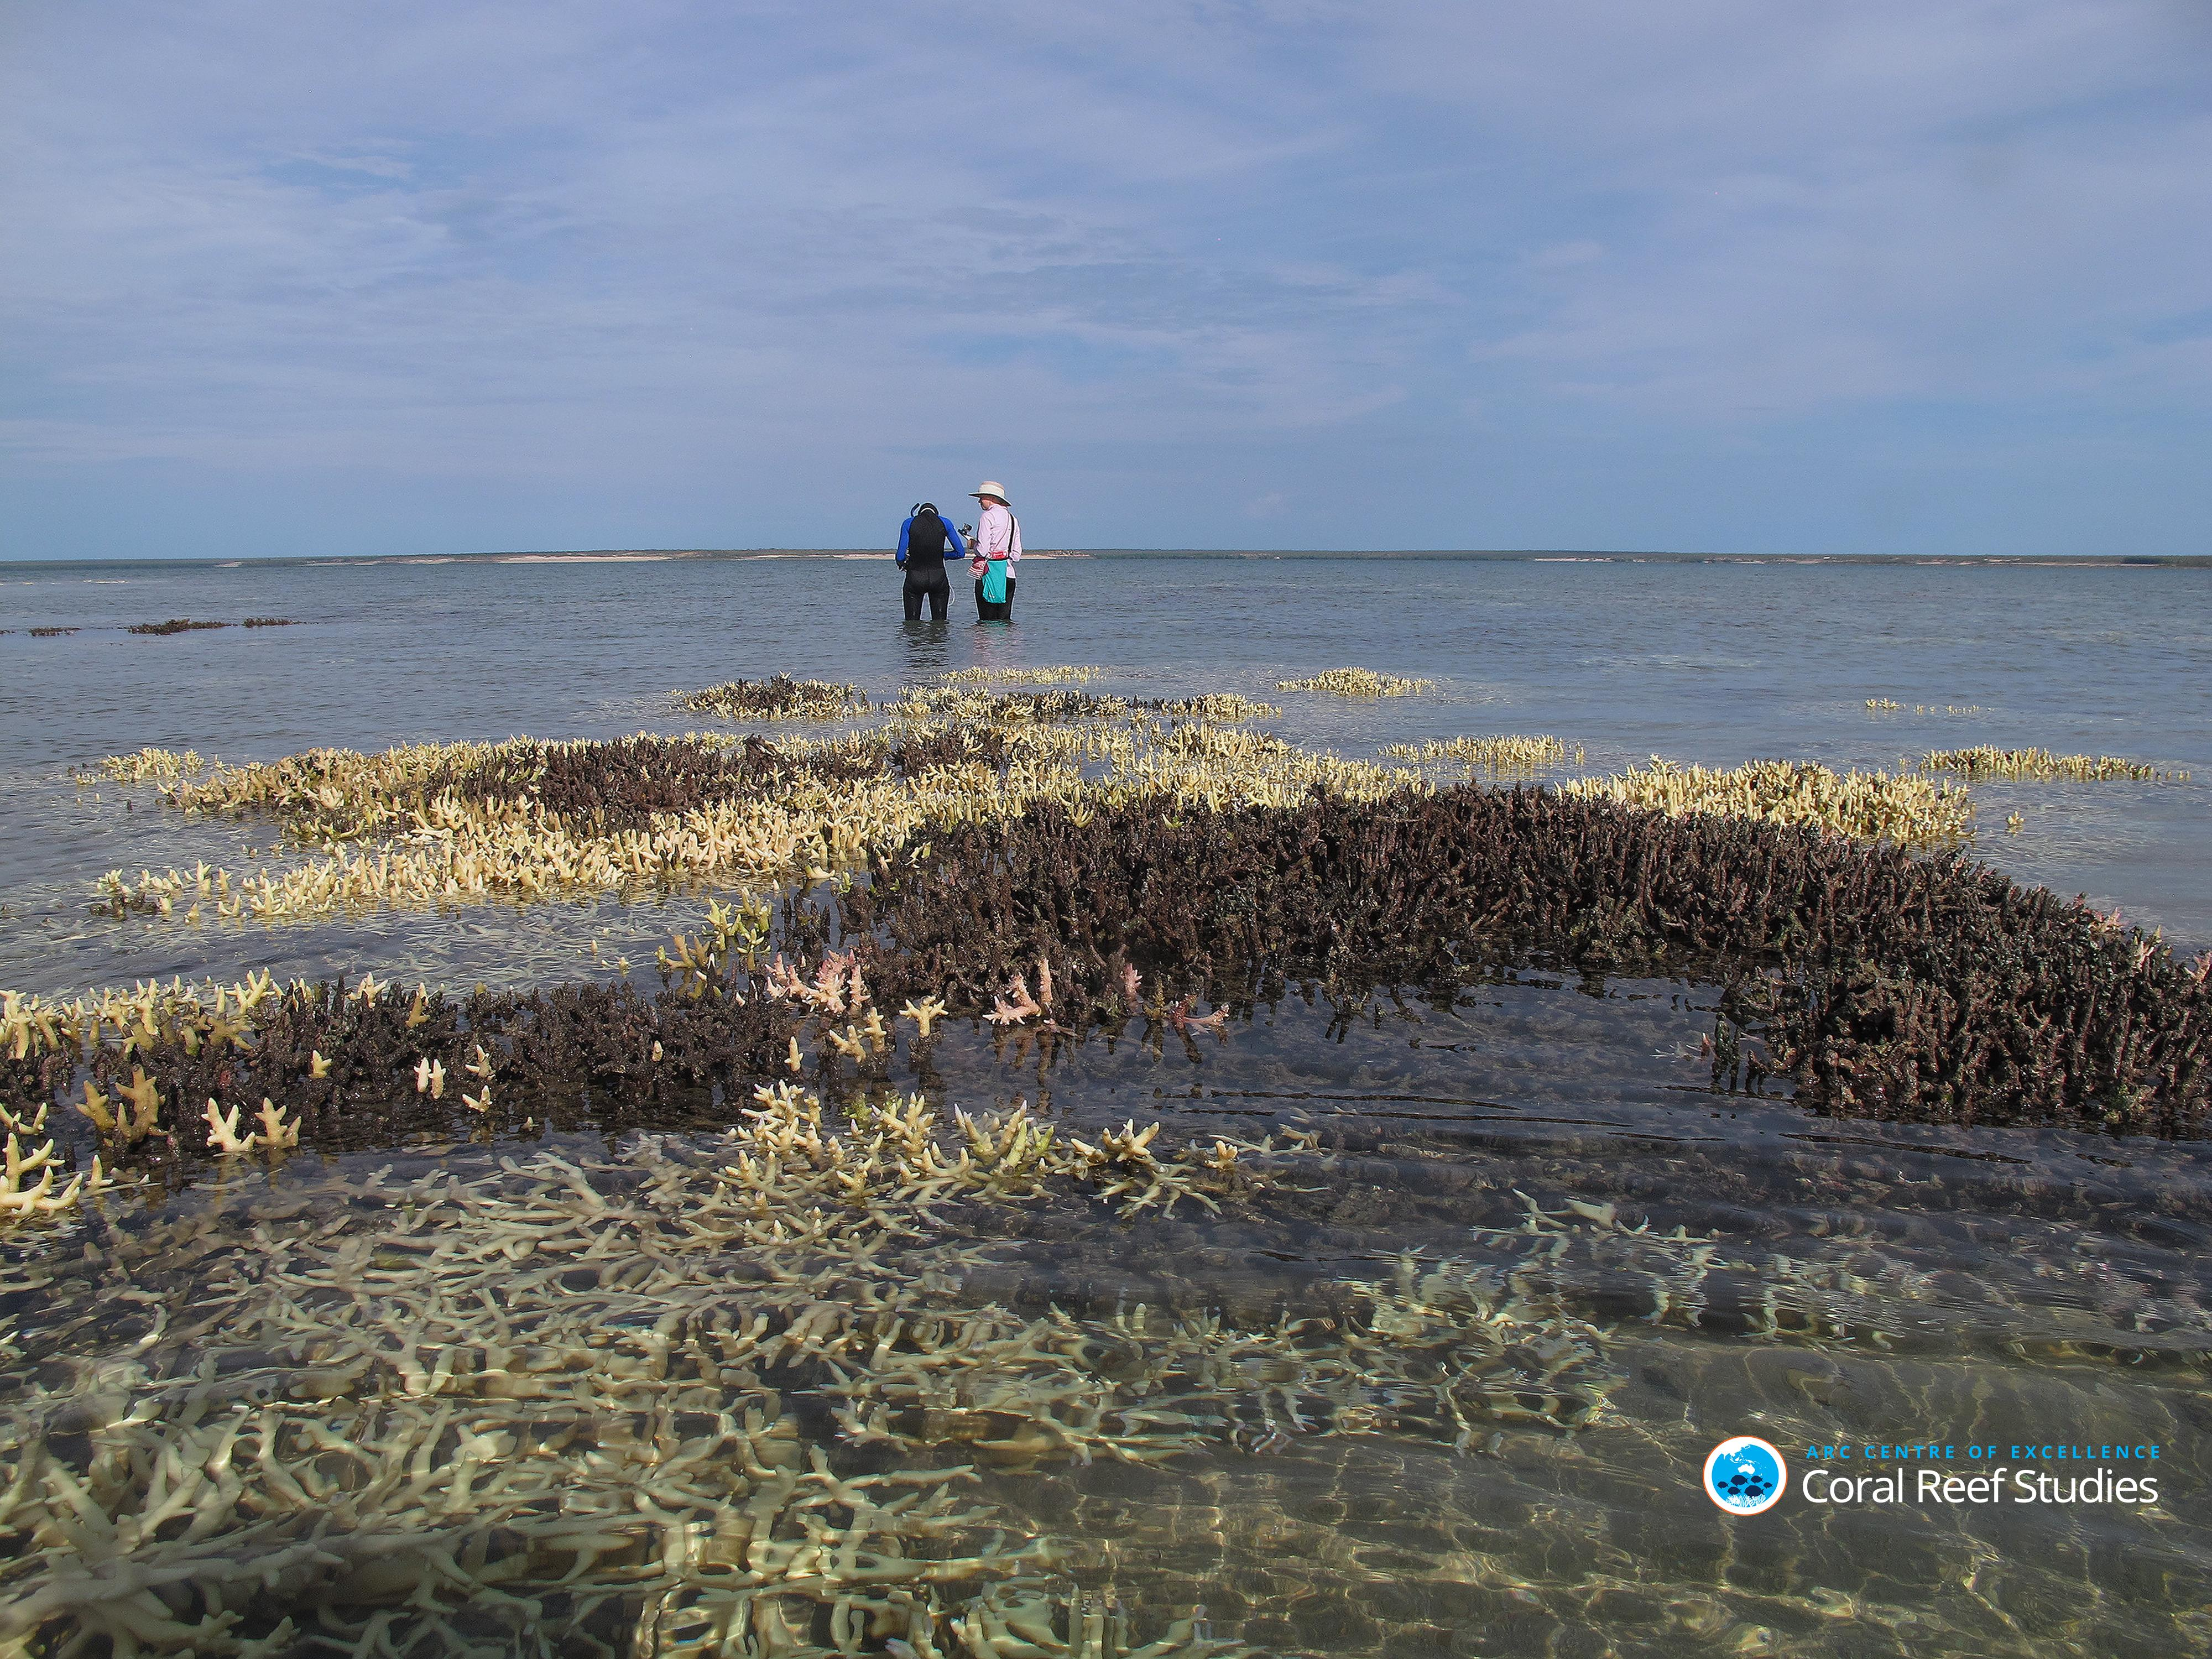 Surveying dead coral in shallow waters at Cygnet Bay Western Australia April 2016 Credit Chris Cornwall